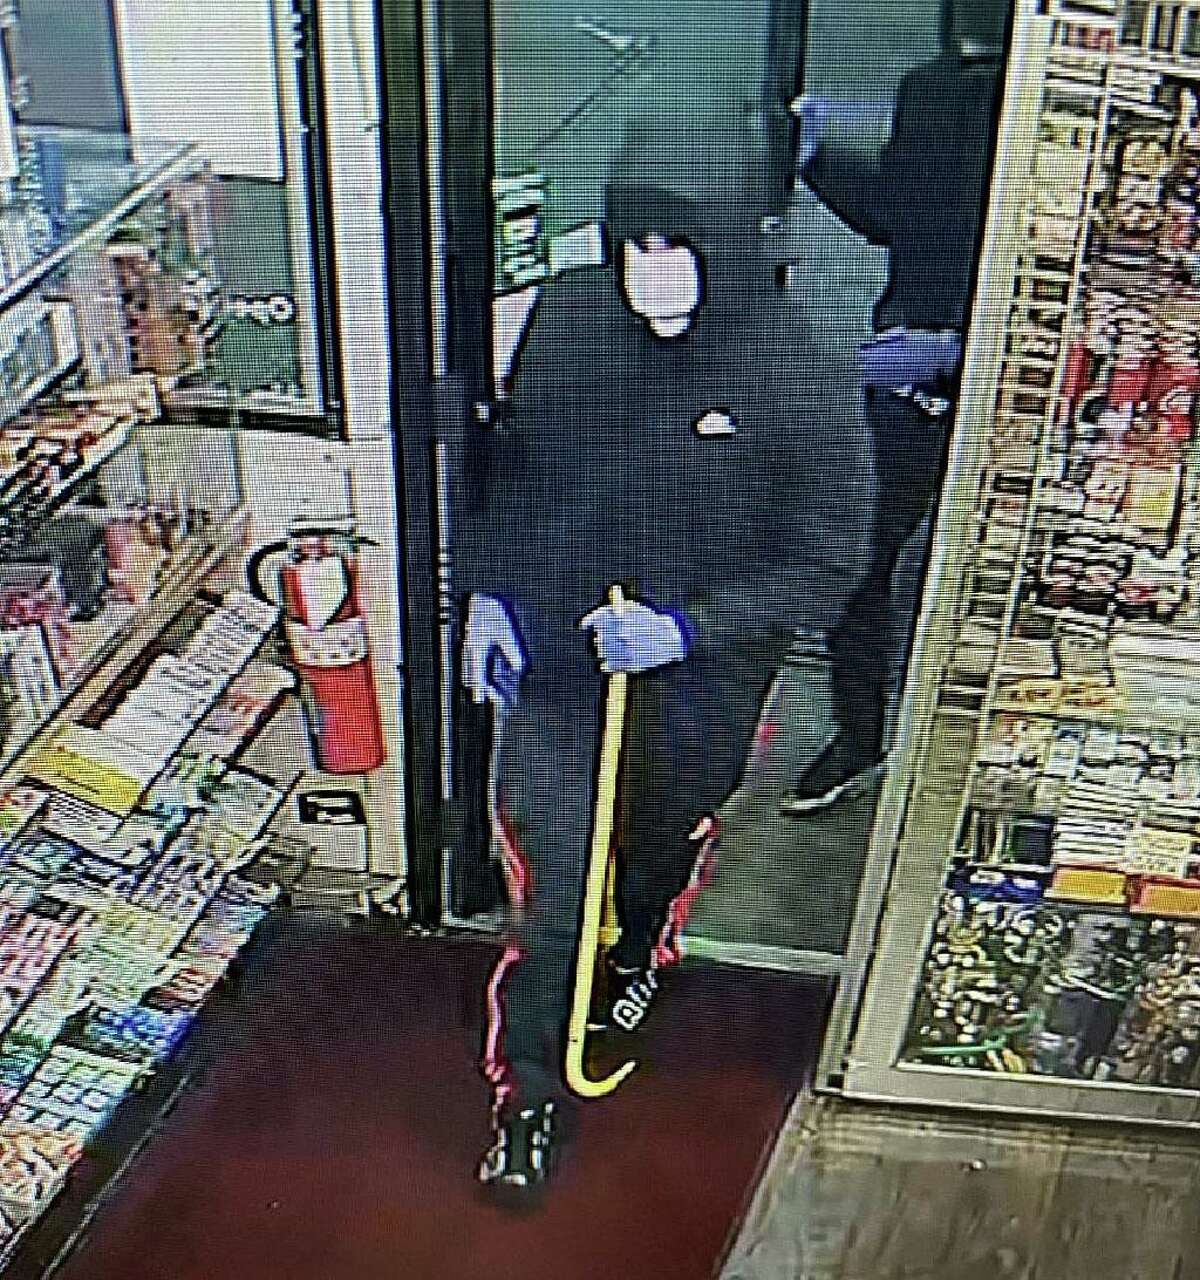 Police said multiple suspects robbed a gas station in Meriden, Conn., on Tuesday, Dec. 22, 2020.